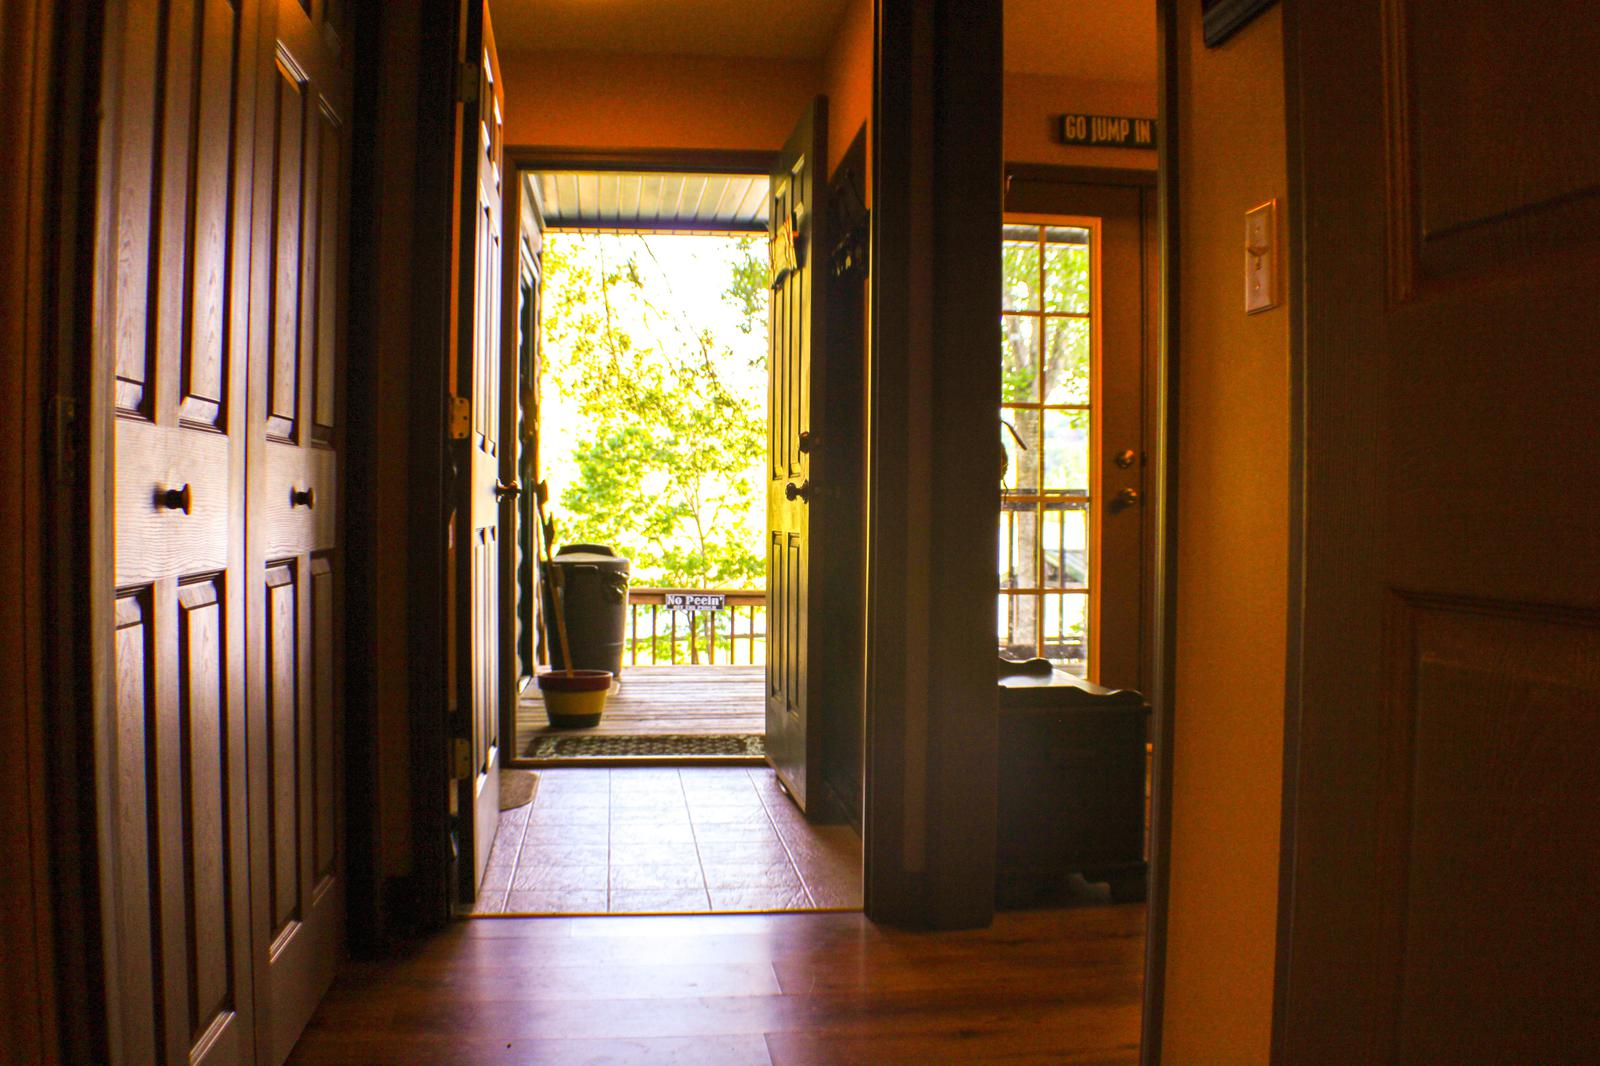 LOOKING OUT OF MASTER BEDROOM